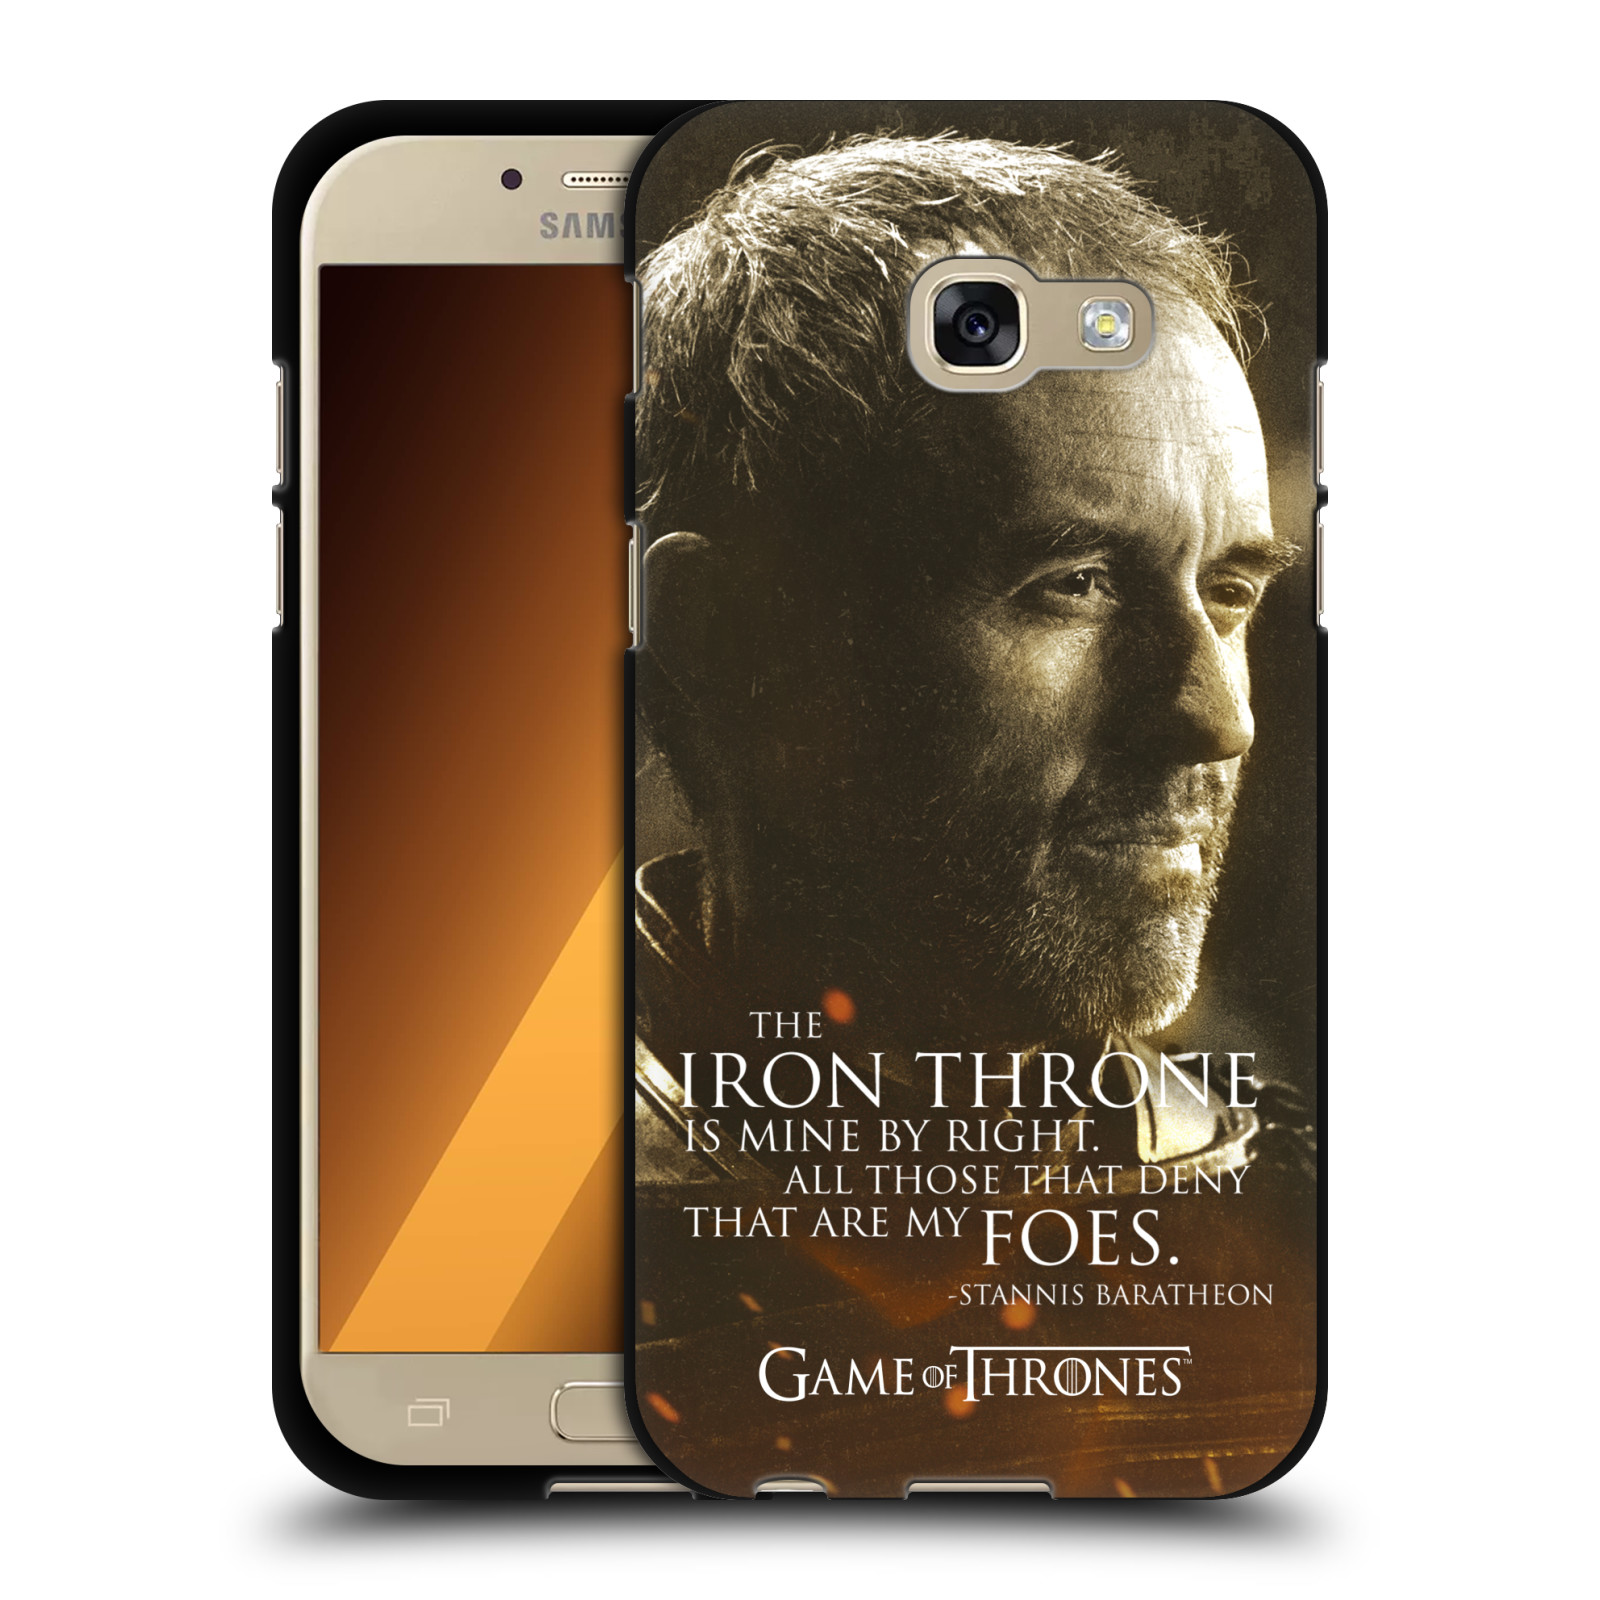 OFFICIAL-HBO-GAME-OF-THRONES-CHARACTER-BLACK-SOFT-GEL-CASE-FOR-SAMSUNG-PHONES-2